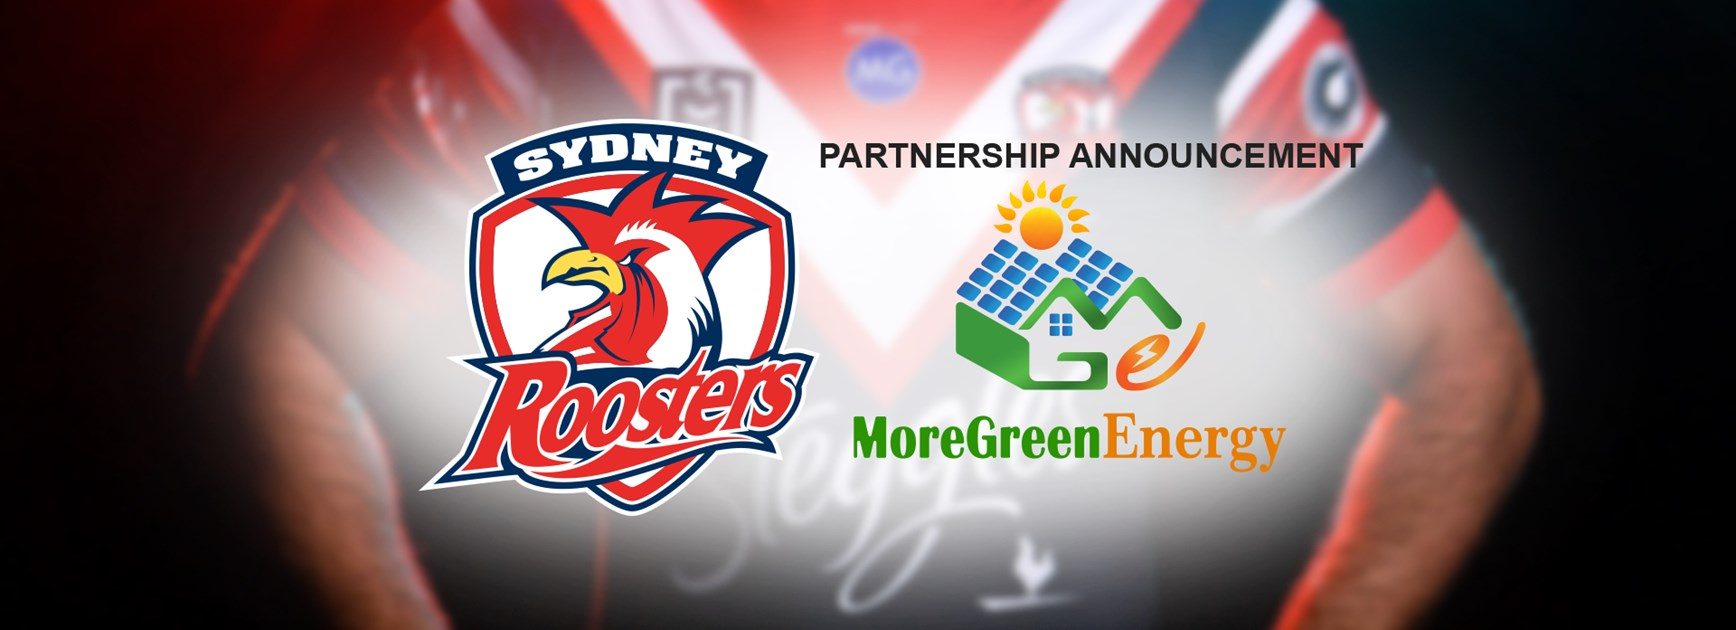 MoreGreen Energy To Power Sydney Roosters